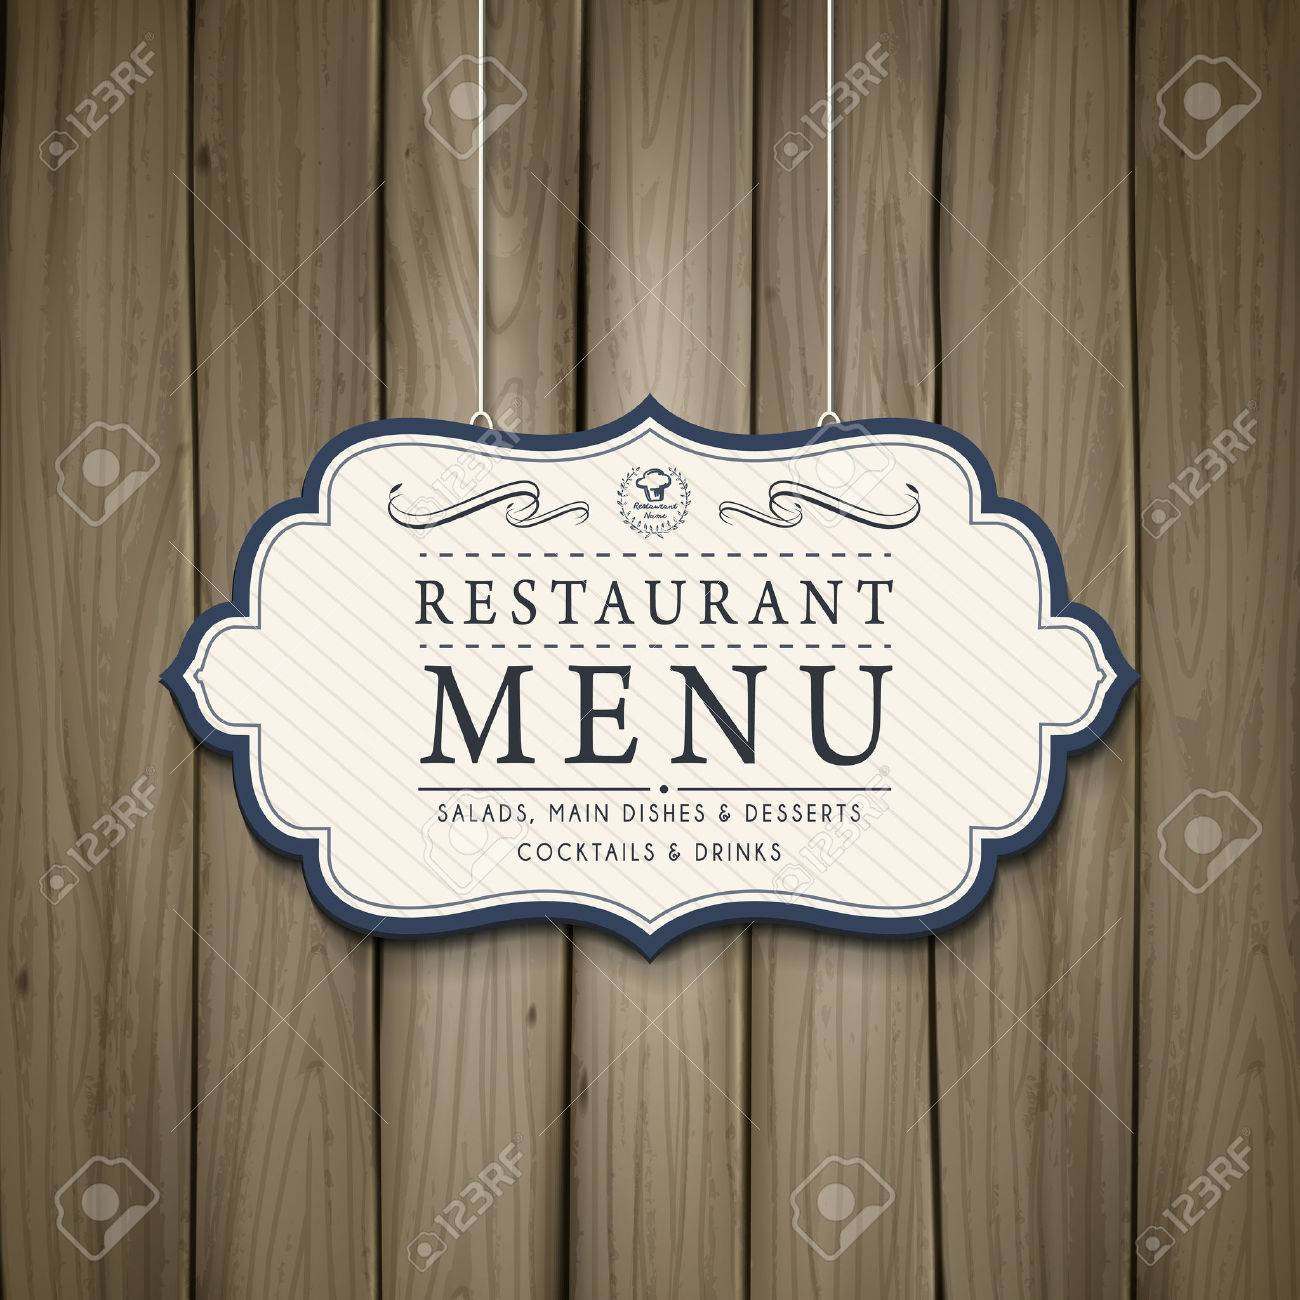 Elegant Restaurant Menu Design In Wooden Style Royalty Free Cliparts Vectors And Stock Illustration Image 37172702